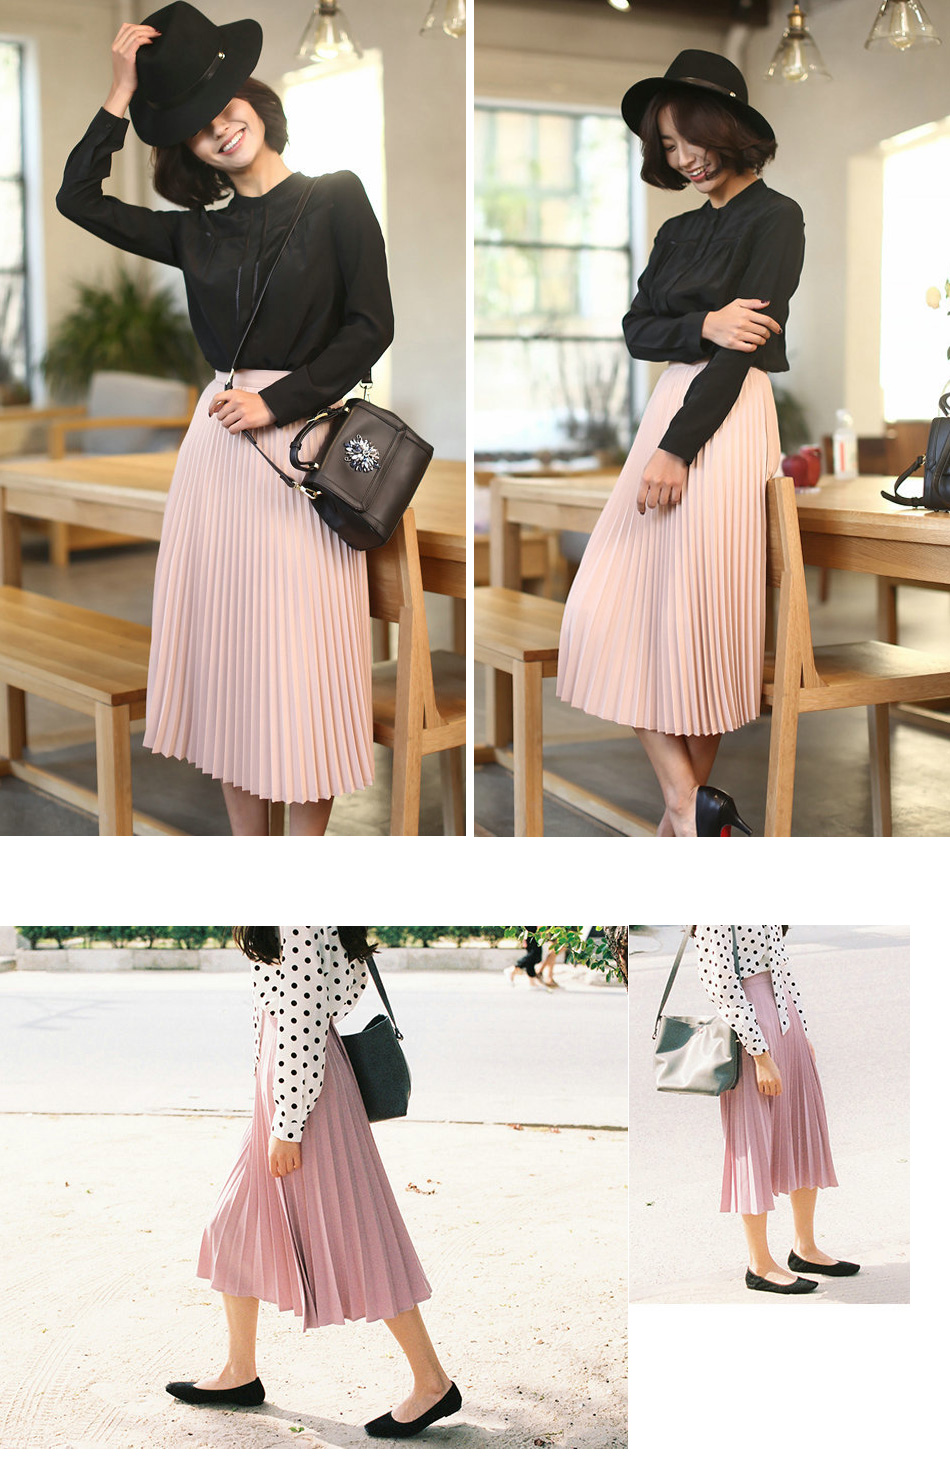 Aonibeier Fashion Women's High Waist Pleated Solid Color Length Elastic Skirt Promotions Lady Black Pink Party Casual Skirts 39